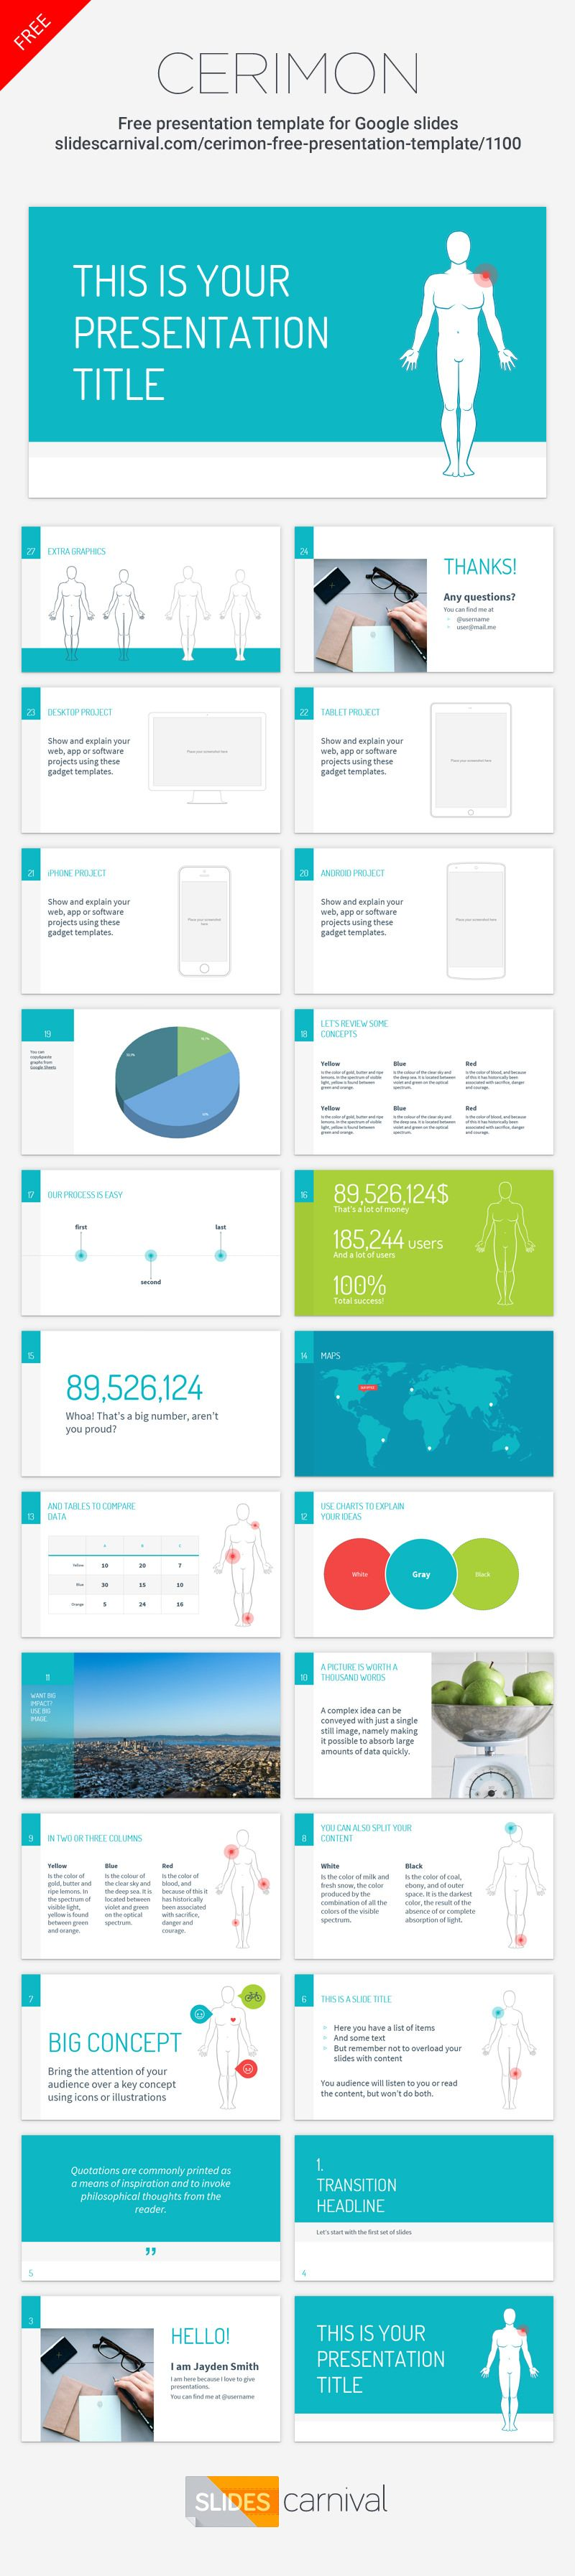 this free presentation template is designed for medical health or